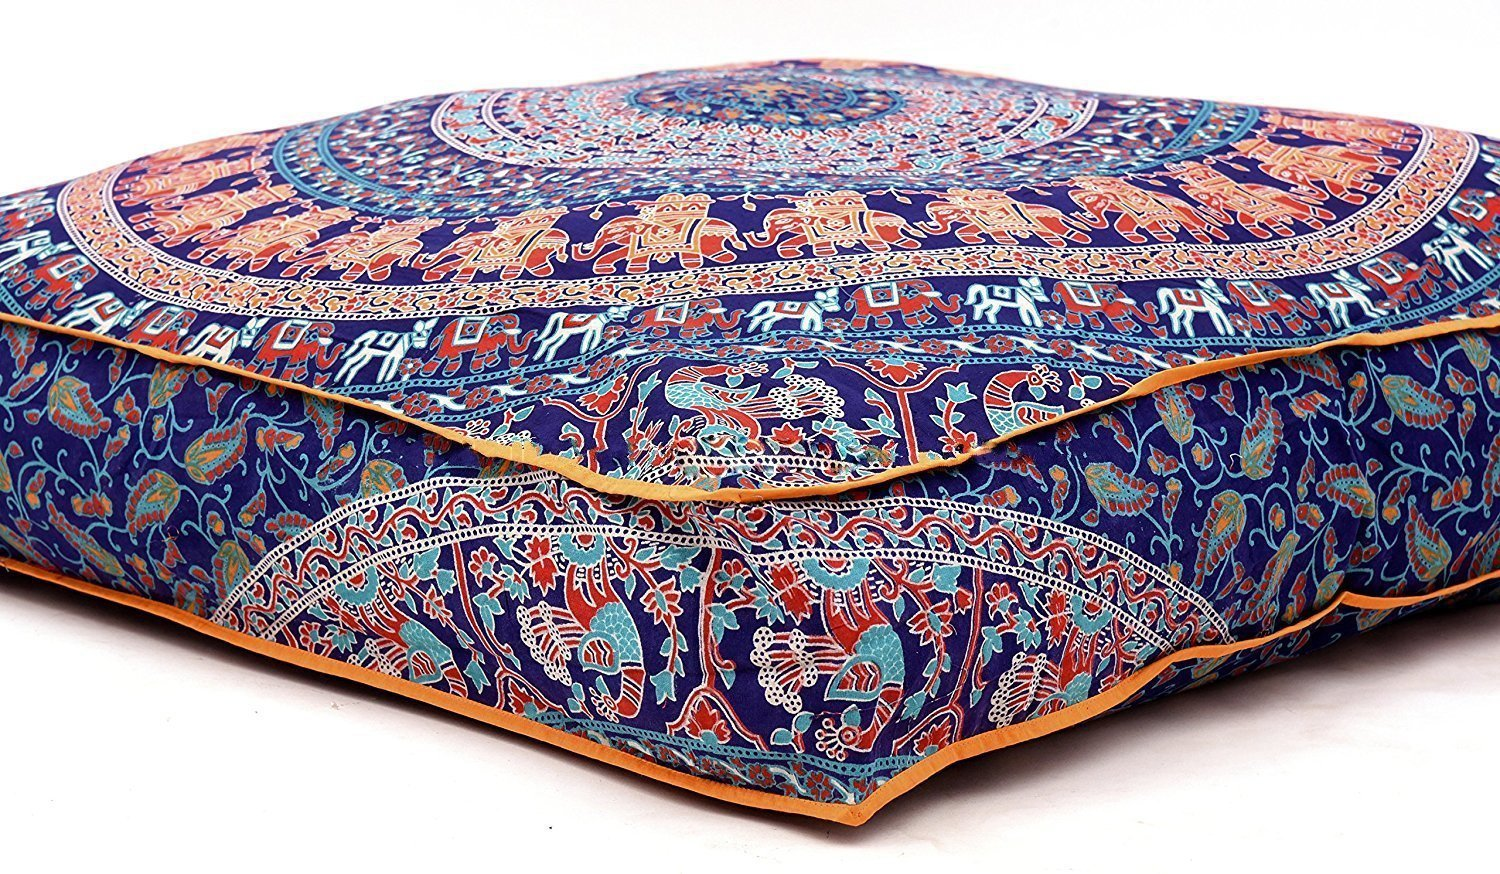 Large Indian Meditation Floor Pillow Cover 35'' X 35'' Inch Elephant Mandala Ottoman Cushion Dog Bed Outdoor Sofa Day Bed Kids Teen Floor Pillow